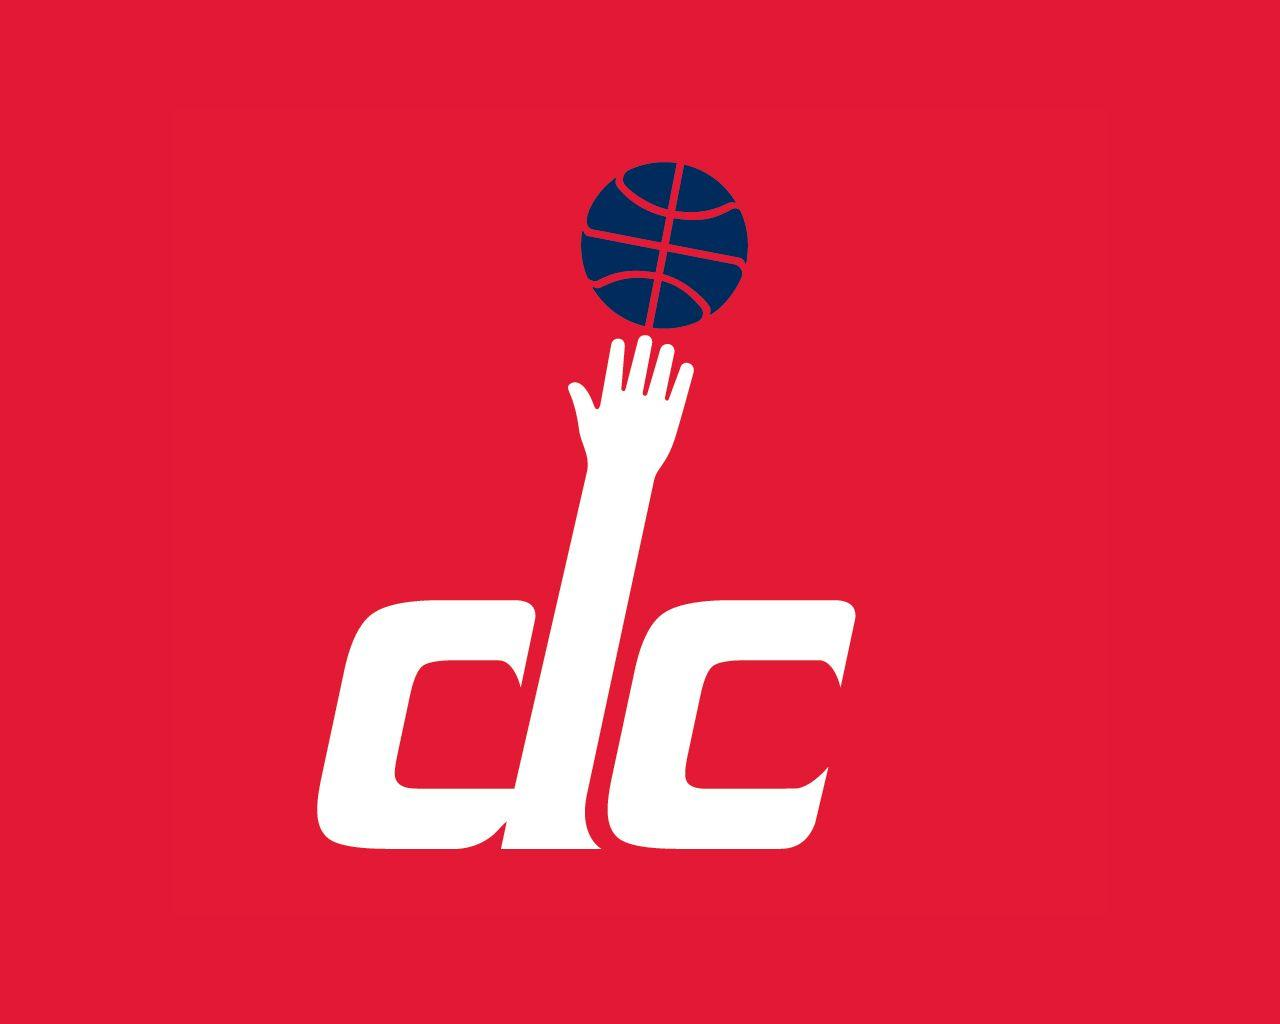 Washington Wizards Desktop Wallpaper - WallpaperSafari